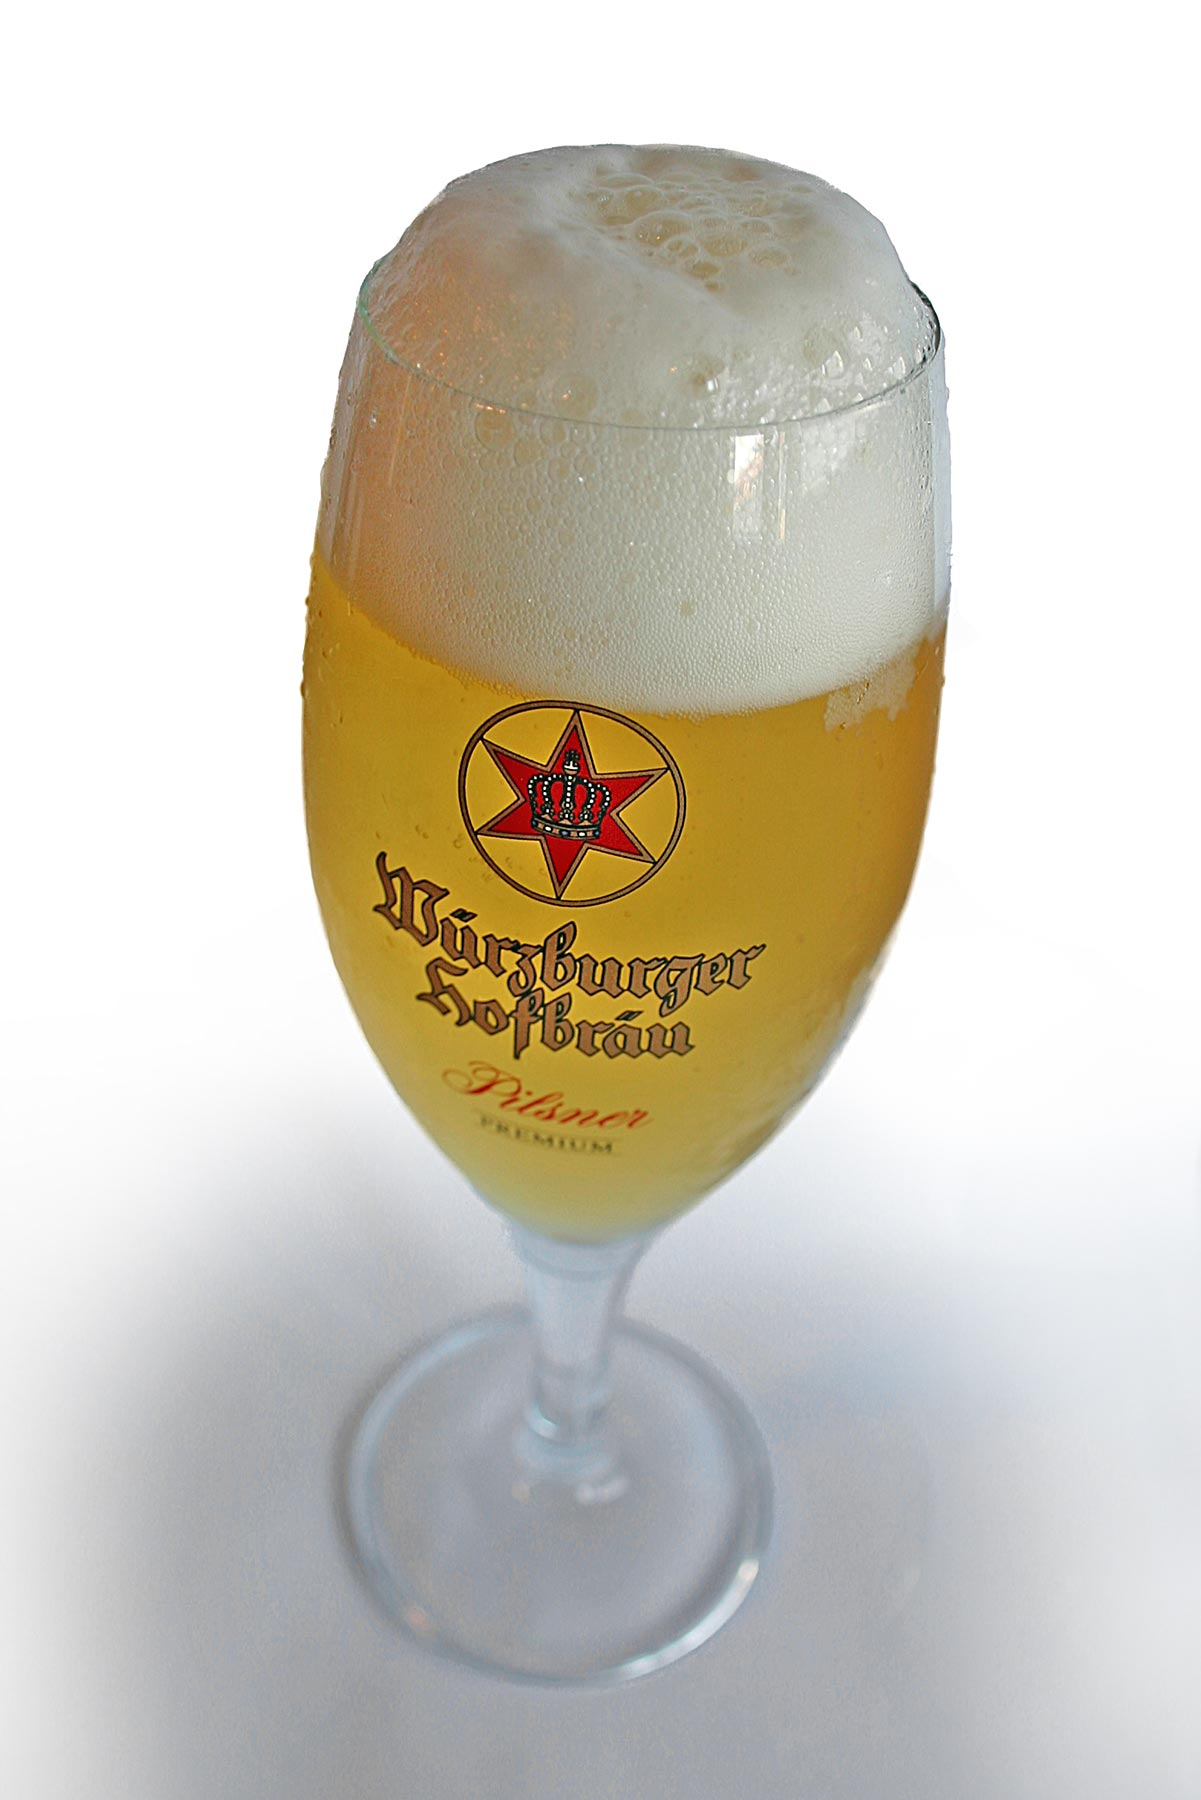 Pale lager - Wikipedia